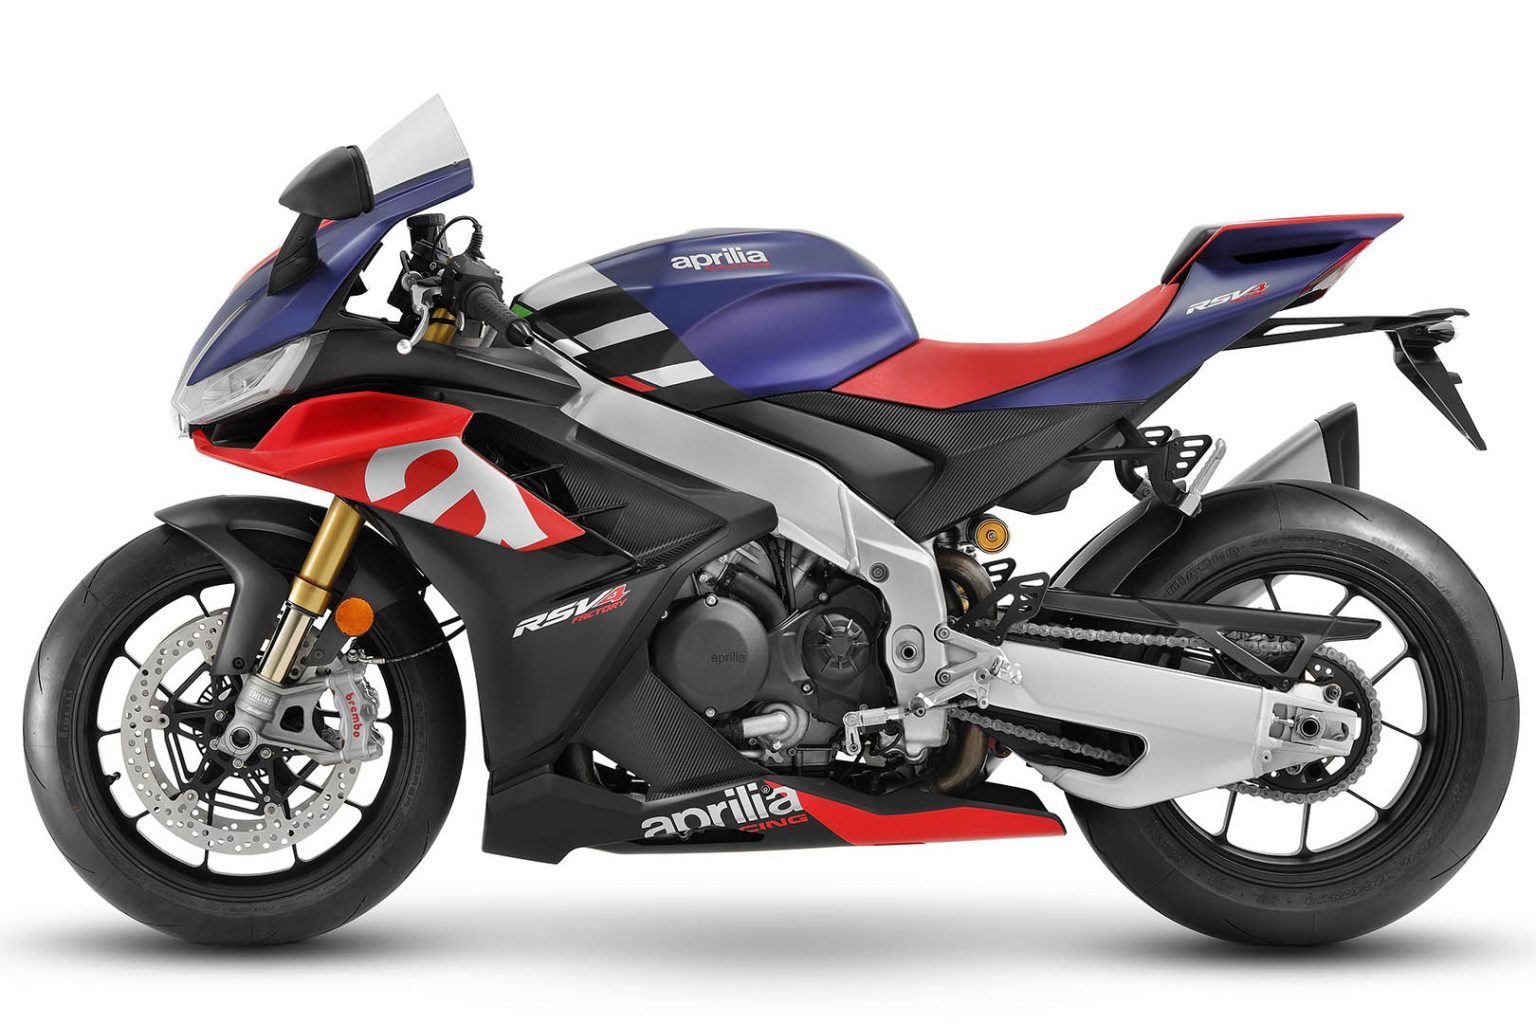 2021 Aprilia RSV4 and RSV4 Factory First Look (11 Fast Facts)